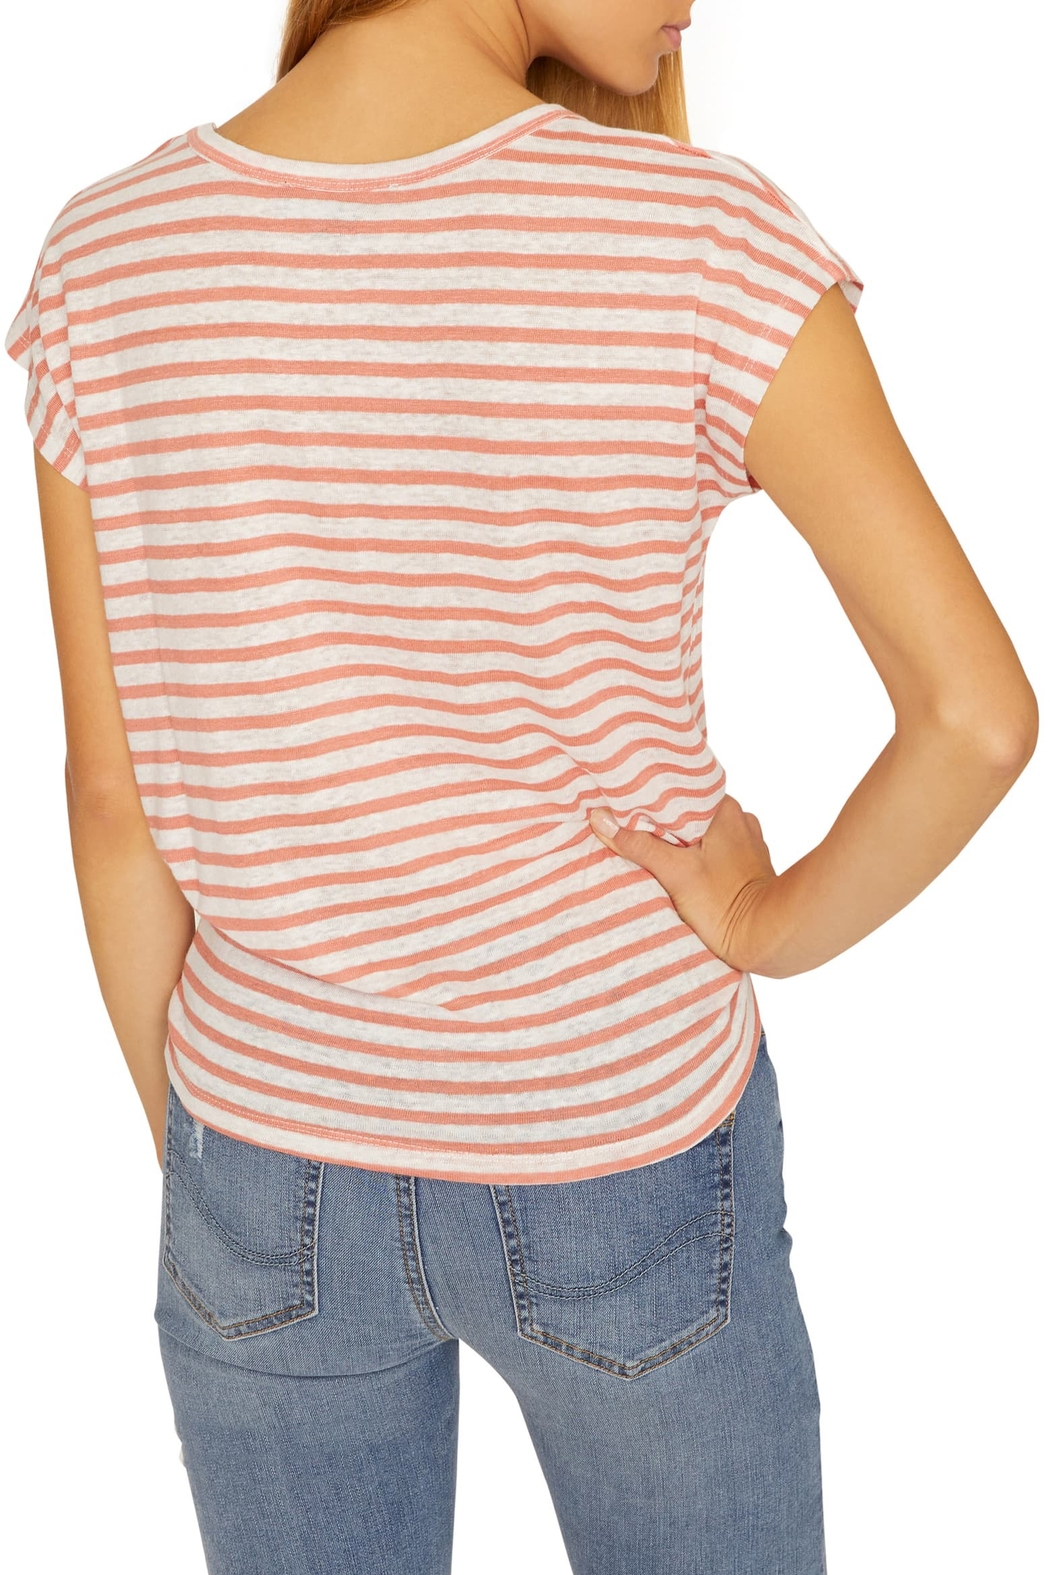 Sanctuary Maddy City Stripe Tee - Side Cropped Image